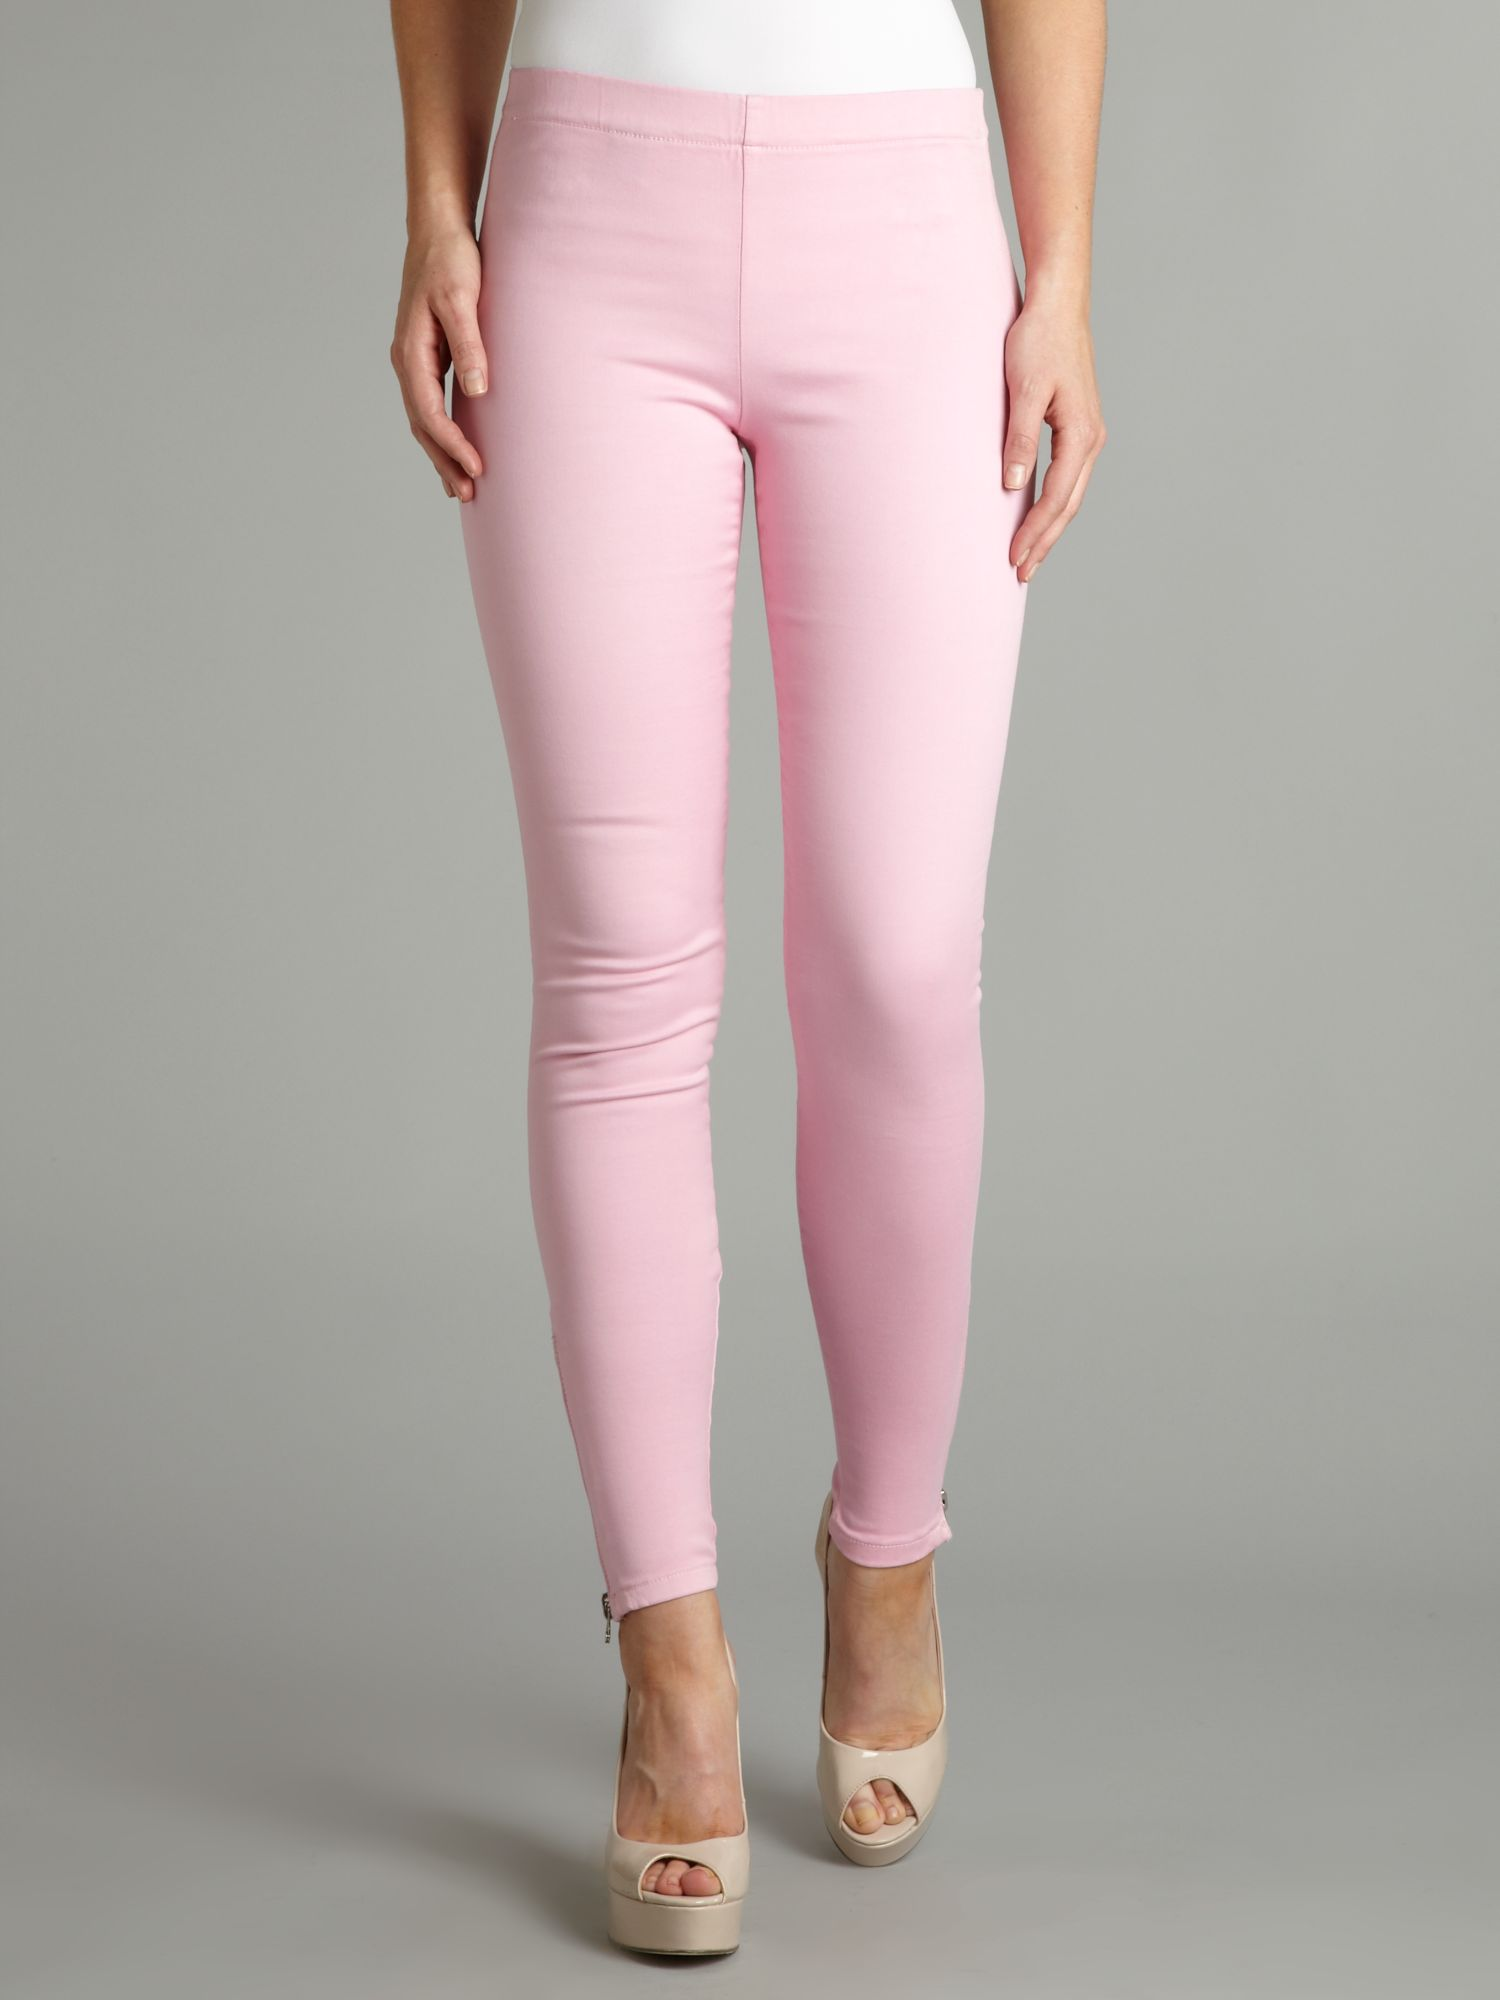 Legging jean with side zip